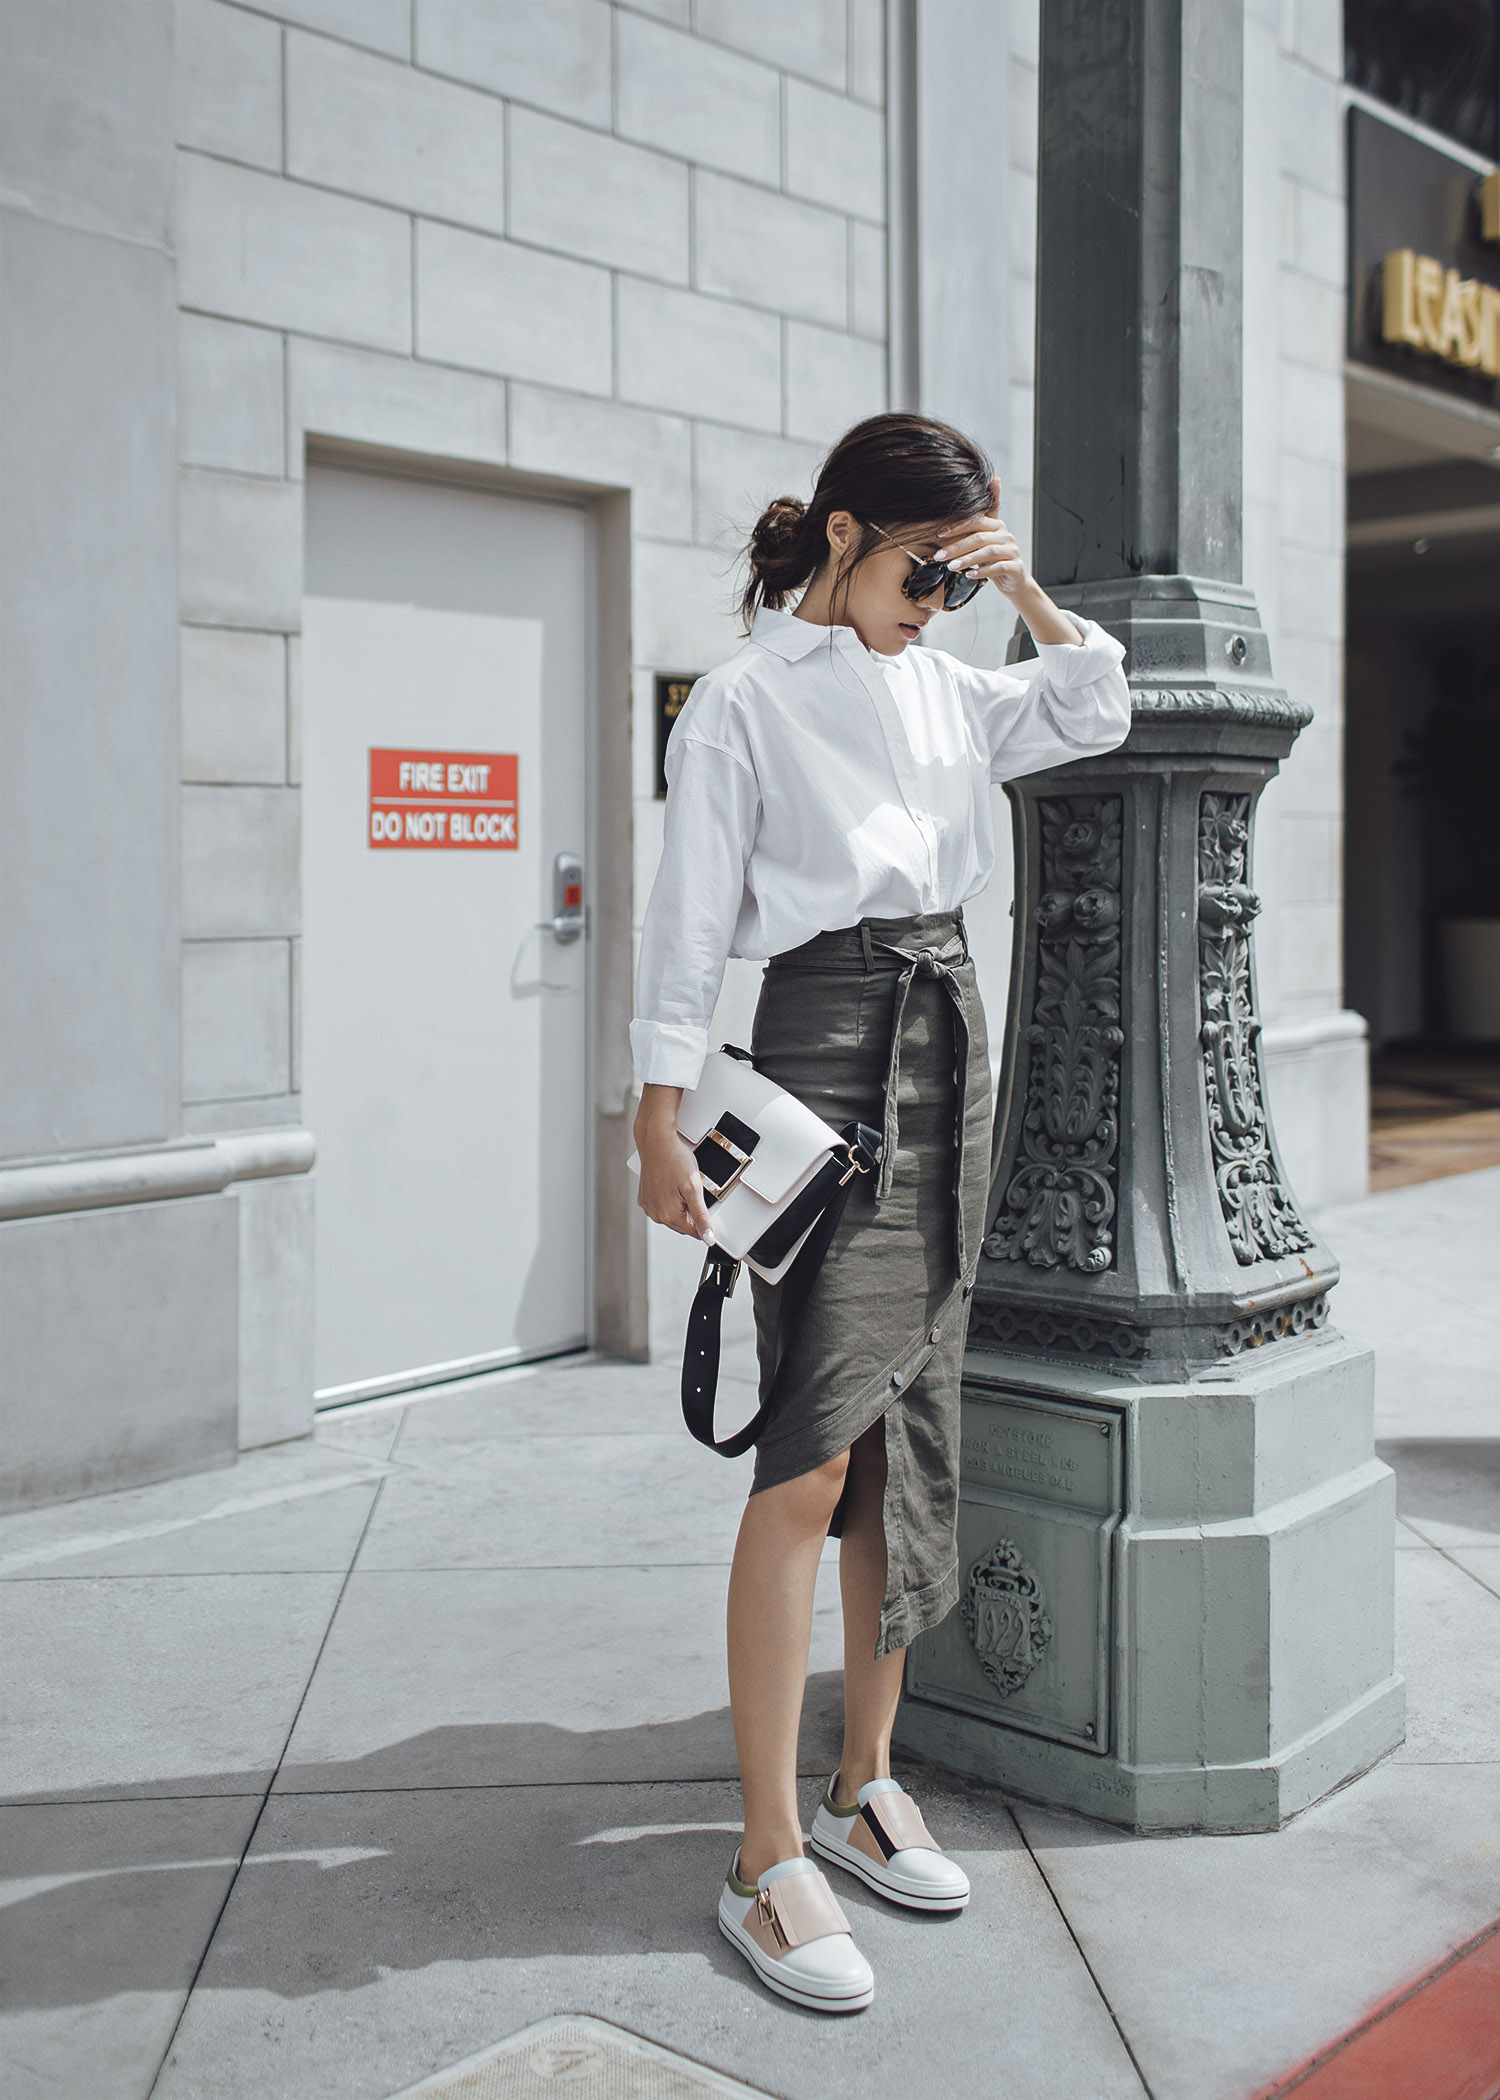 Midi skirt outfit Street style fashion blogger influencer Jenny Tsang of Tsangtastic wearing white button down shirt khaki high waist uneven hem midi skirt roger vivier sneaky viv sneakers karen walker sunglasses in Los Angeles California